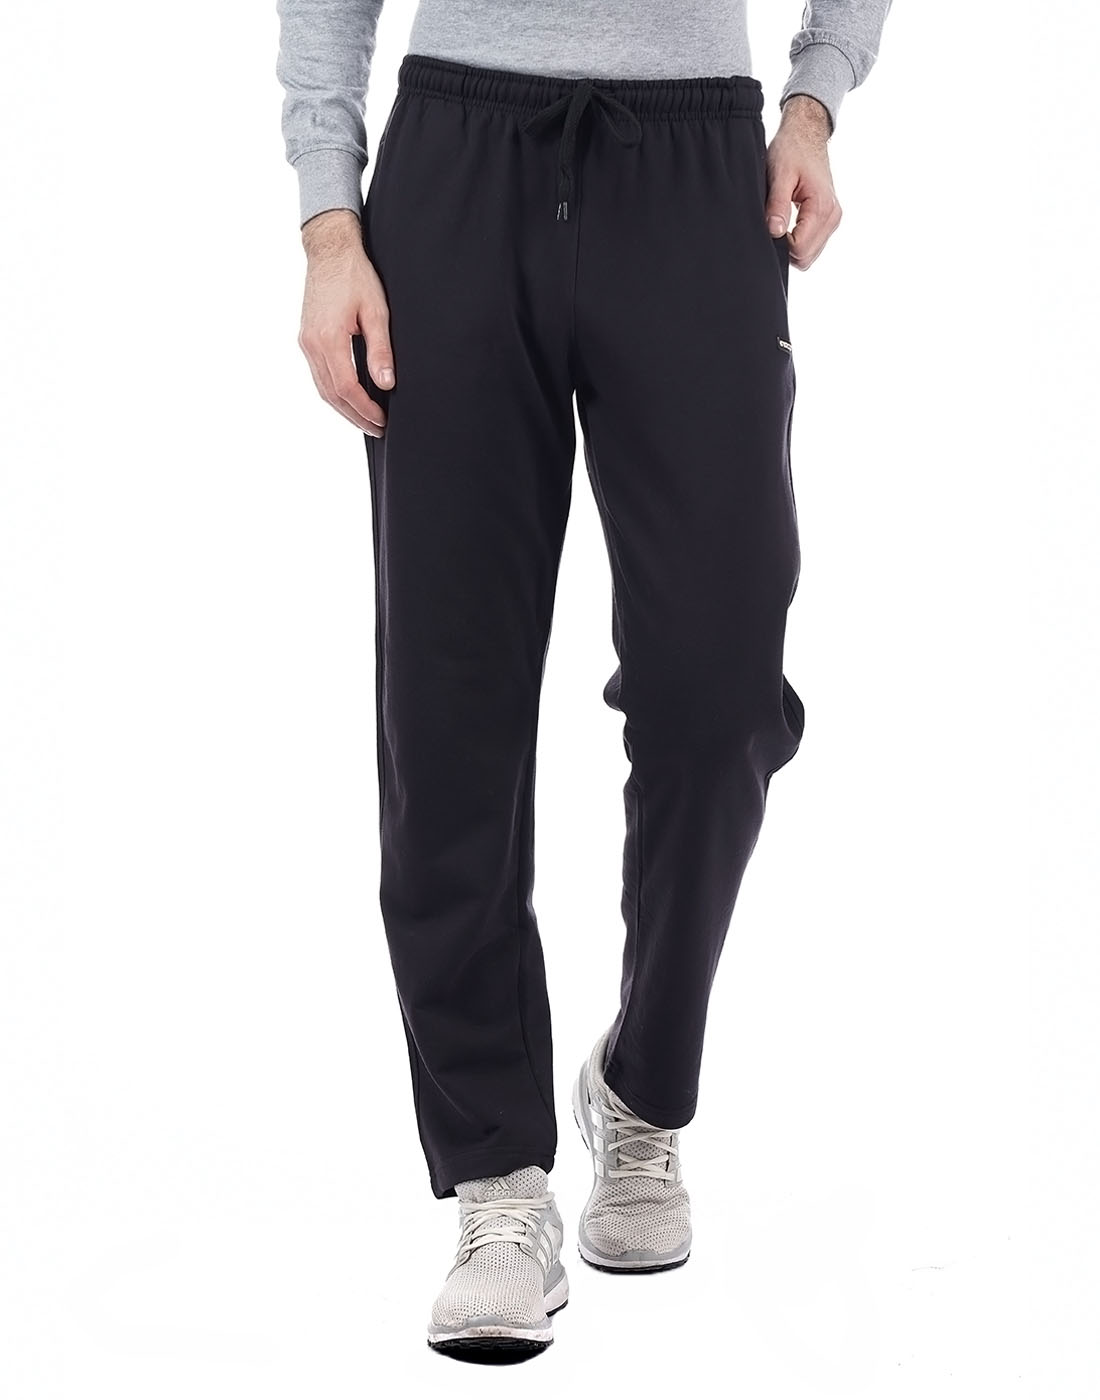 Cloak & Decker Men Black Track Pant